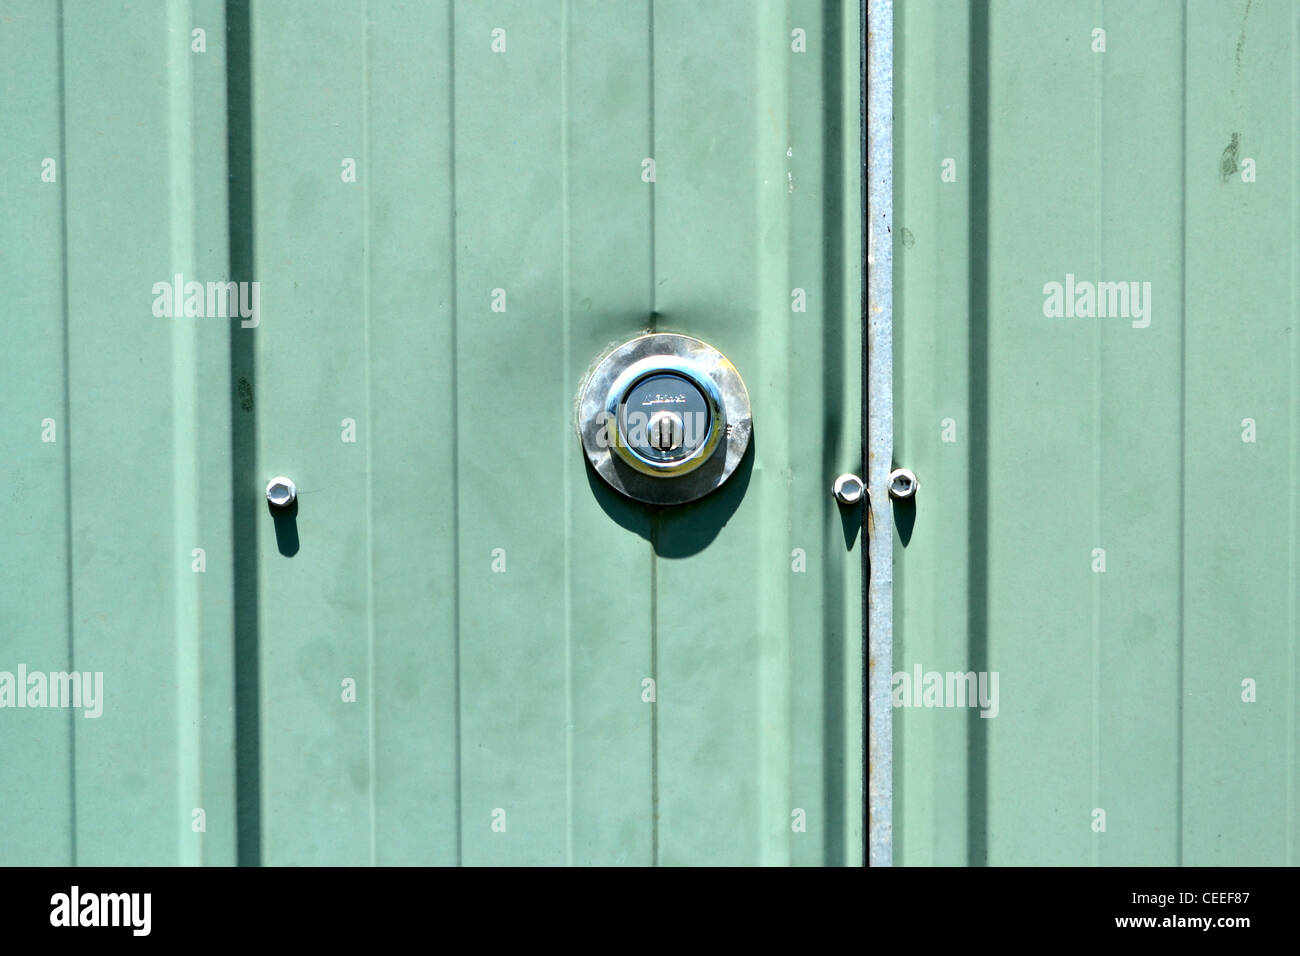 shed door deadbolt keyhole  sc 1 st  Alamy & shed door deadbolt keyhole Stock Photo Royalty Free Image ...